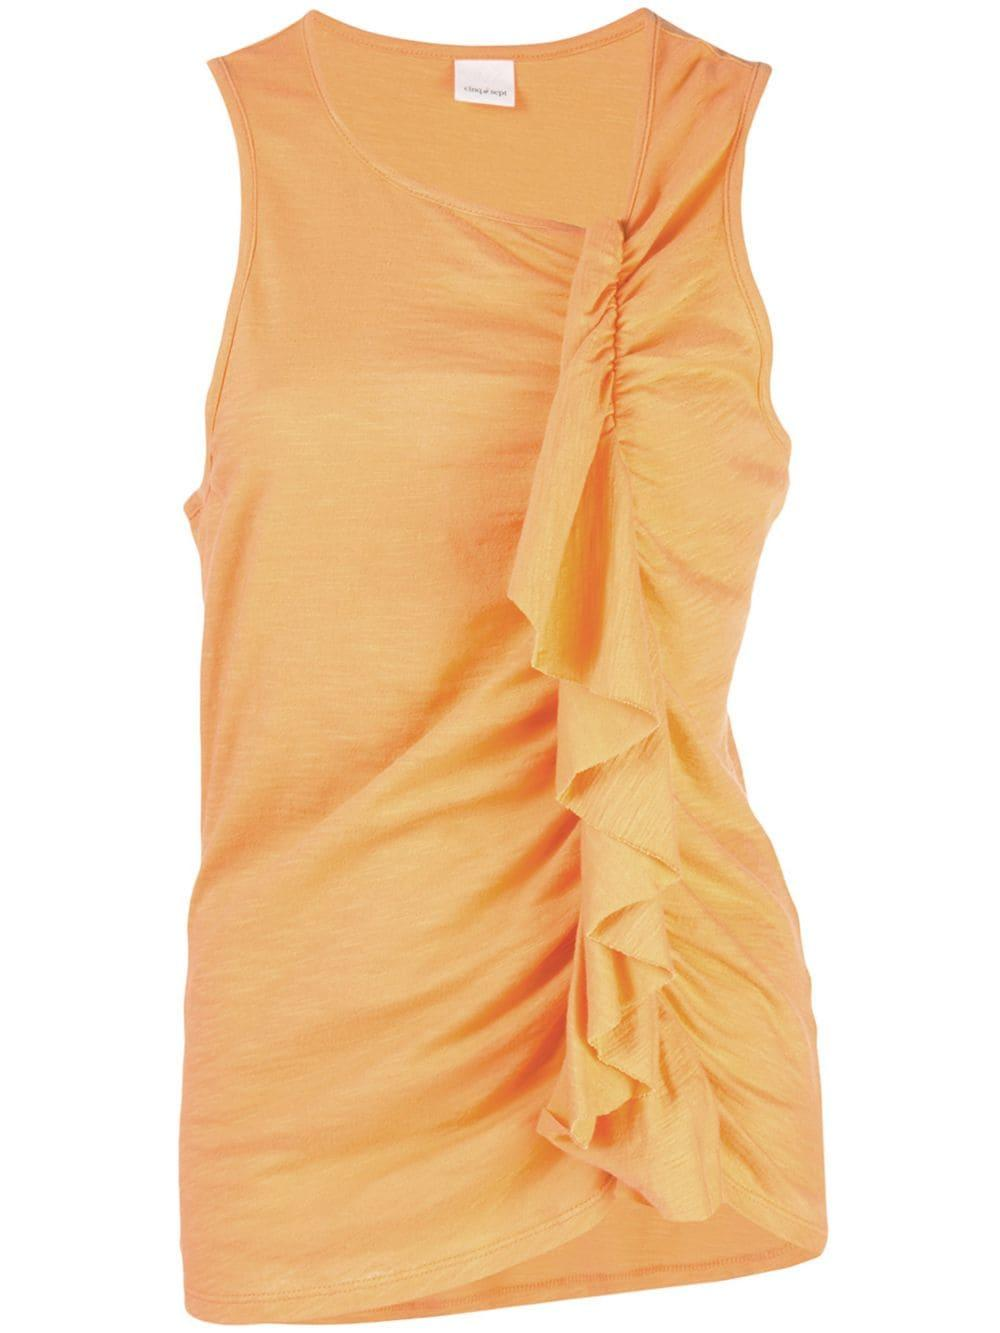 Ridge Sleeveless Top